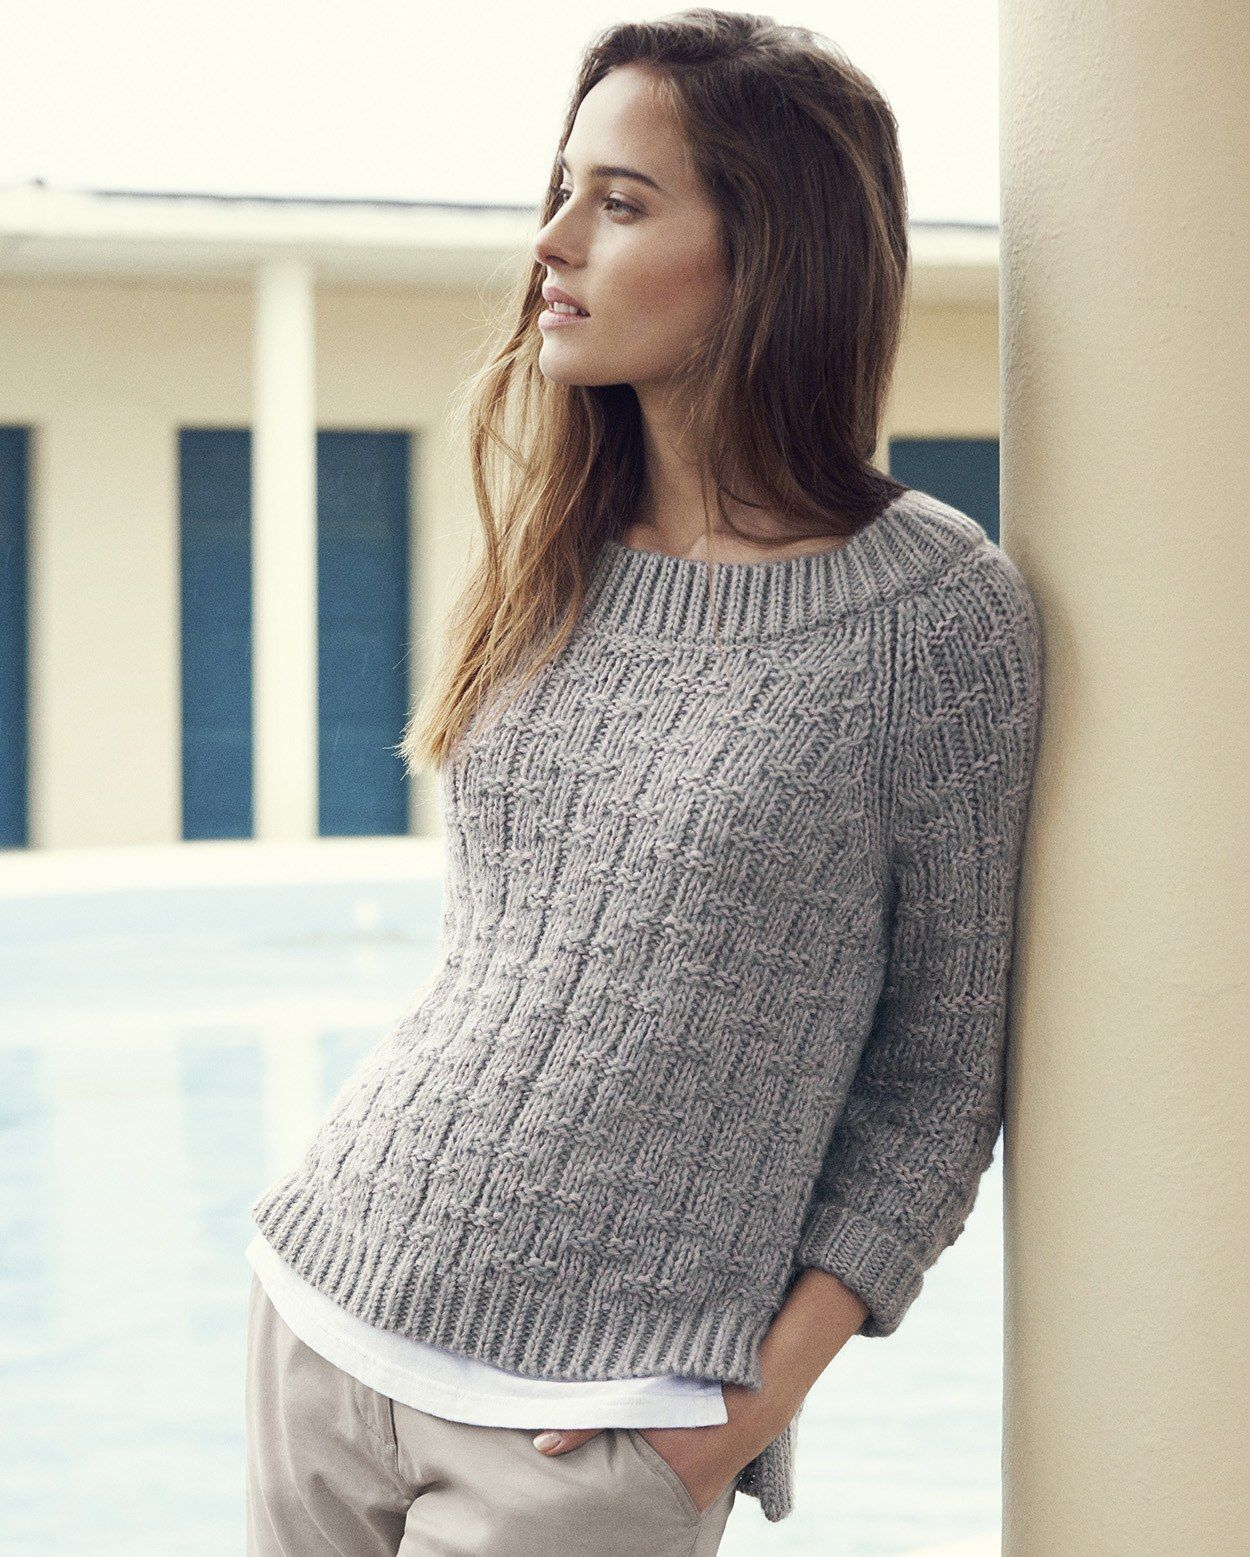 Poetry chunky knit sweater knitting pinterest knitting poetry chunky knit sweater bankloansurffo Gallery